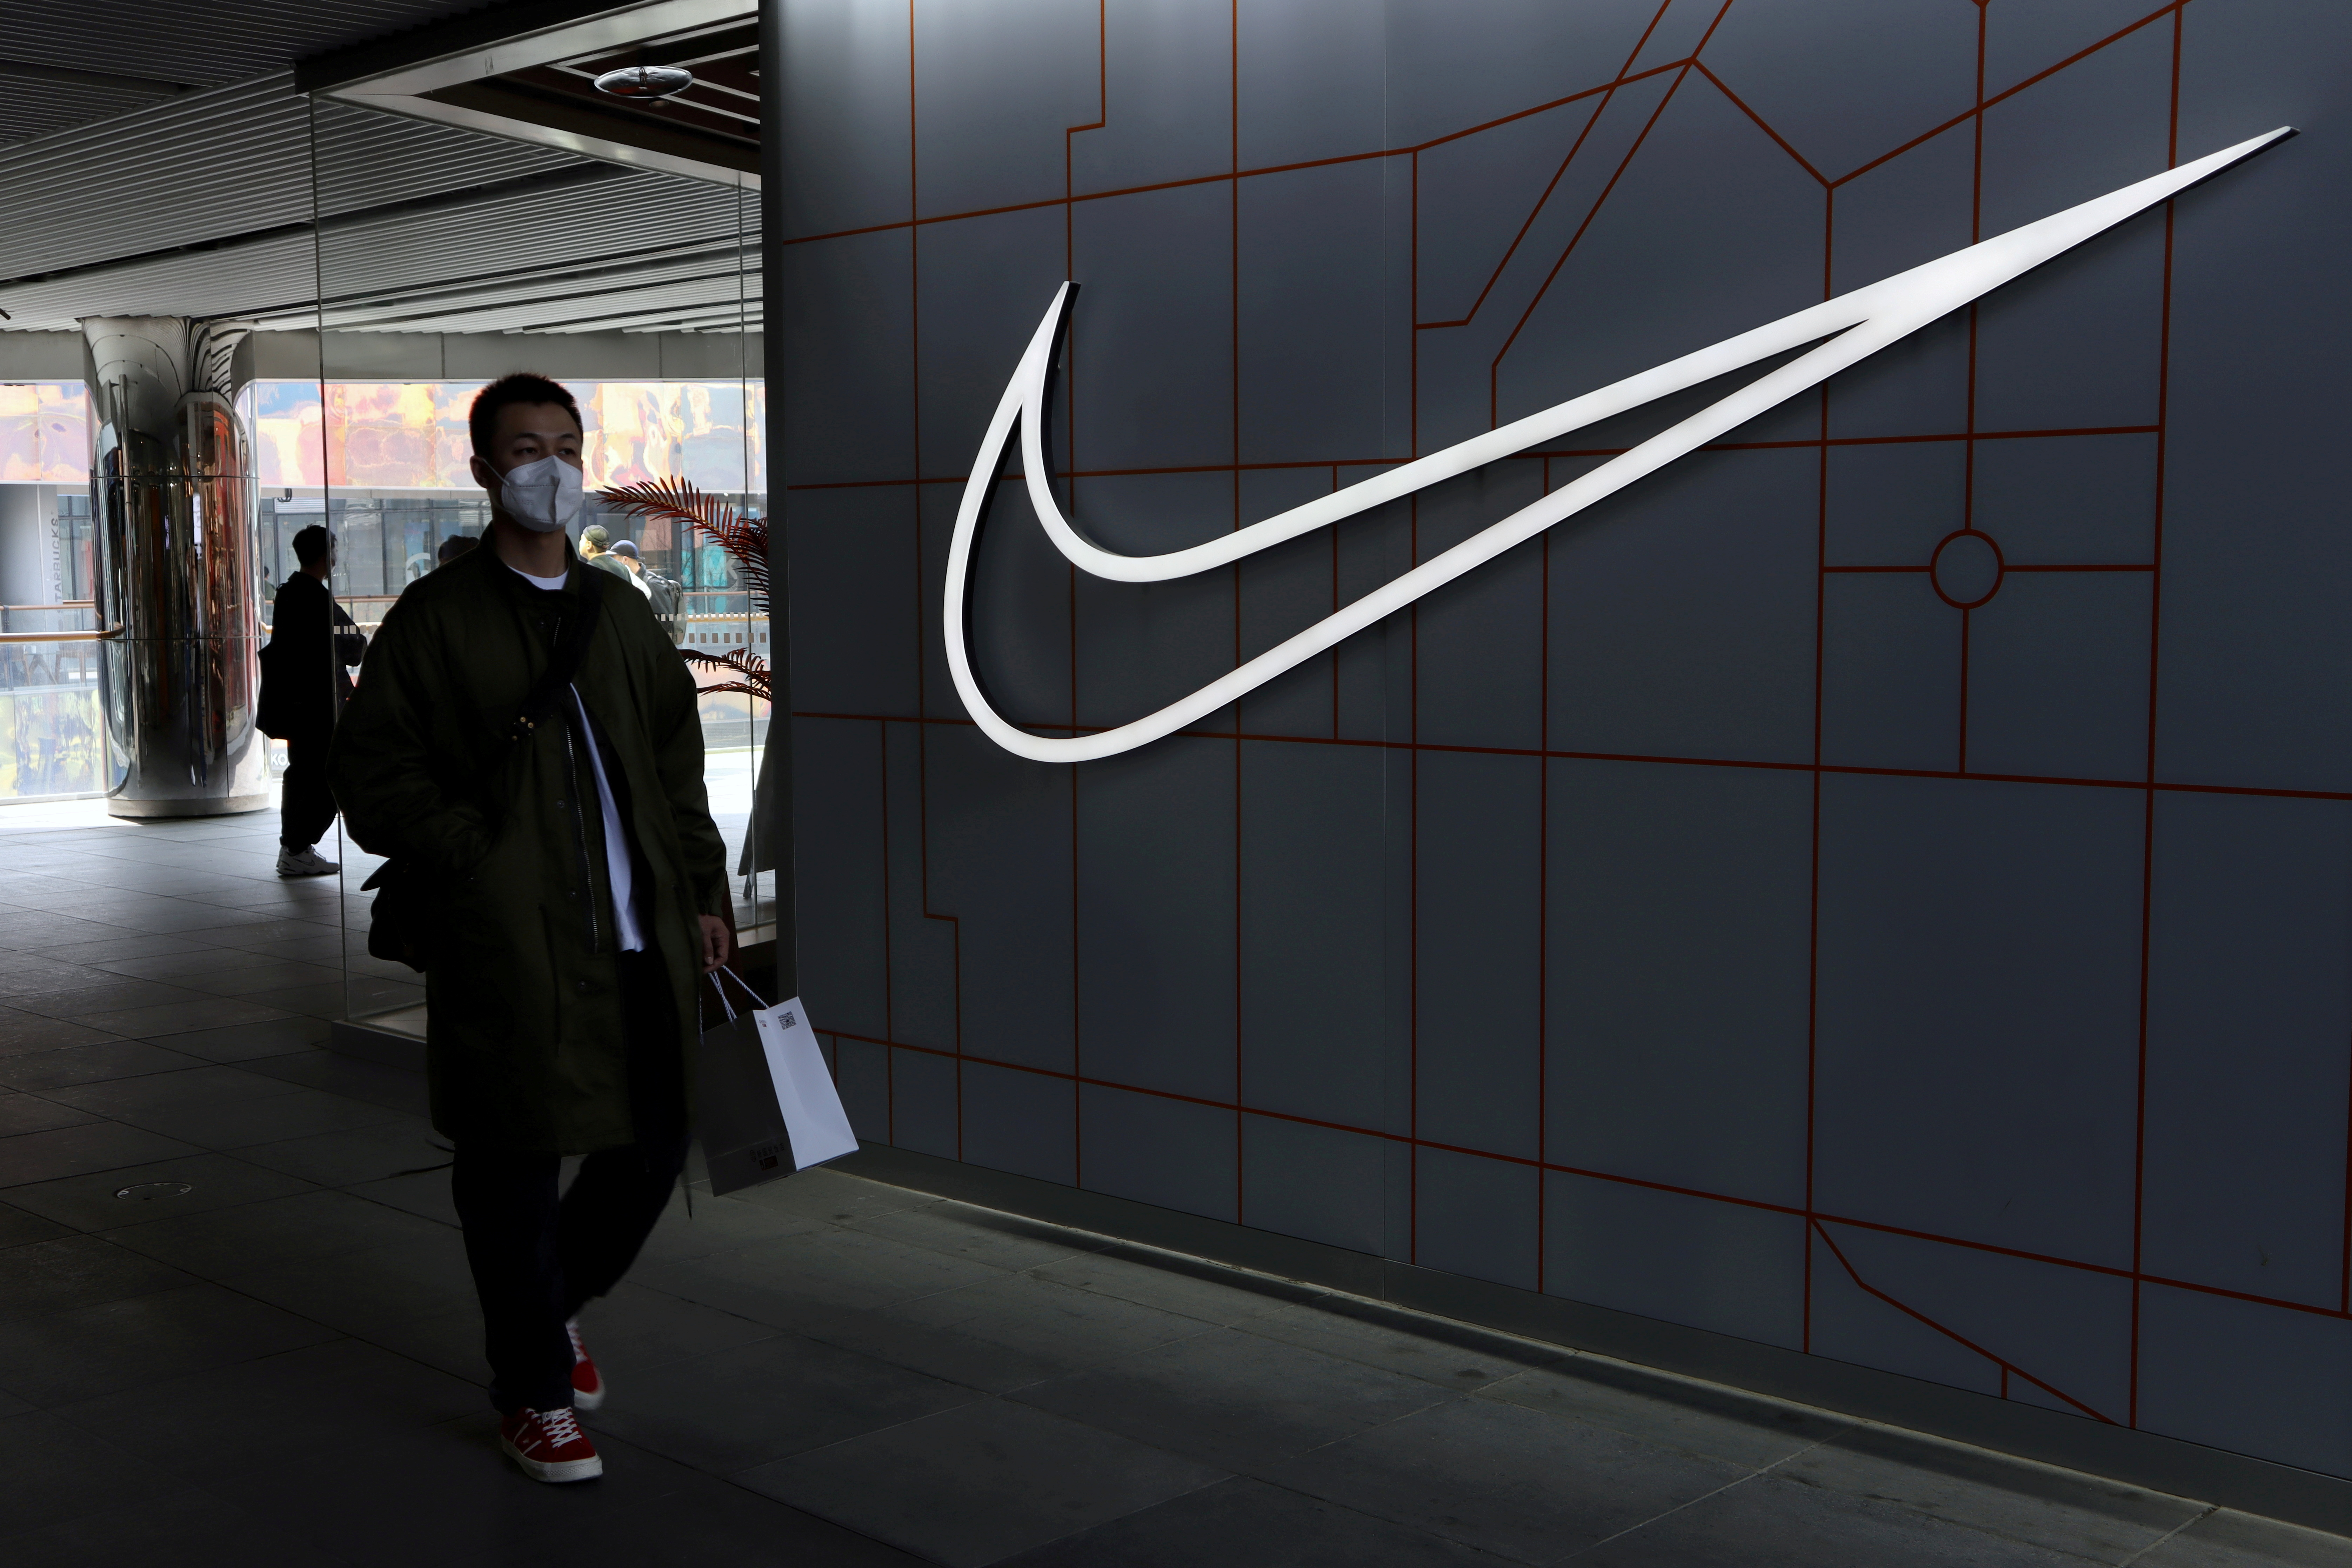 A man walks past a store of the sporting goods retailer Nike Inc at a shopping complex in Beijing, China March 25, 2021. REUTERS/Florence Lo/File Photo